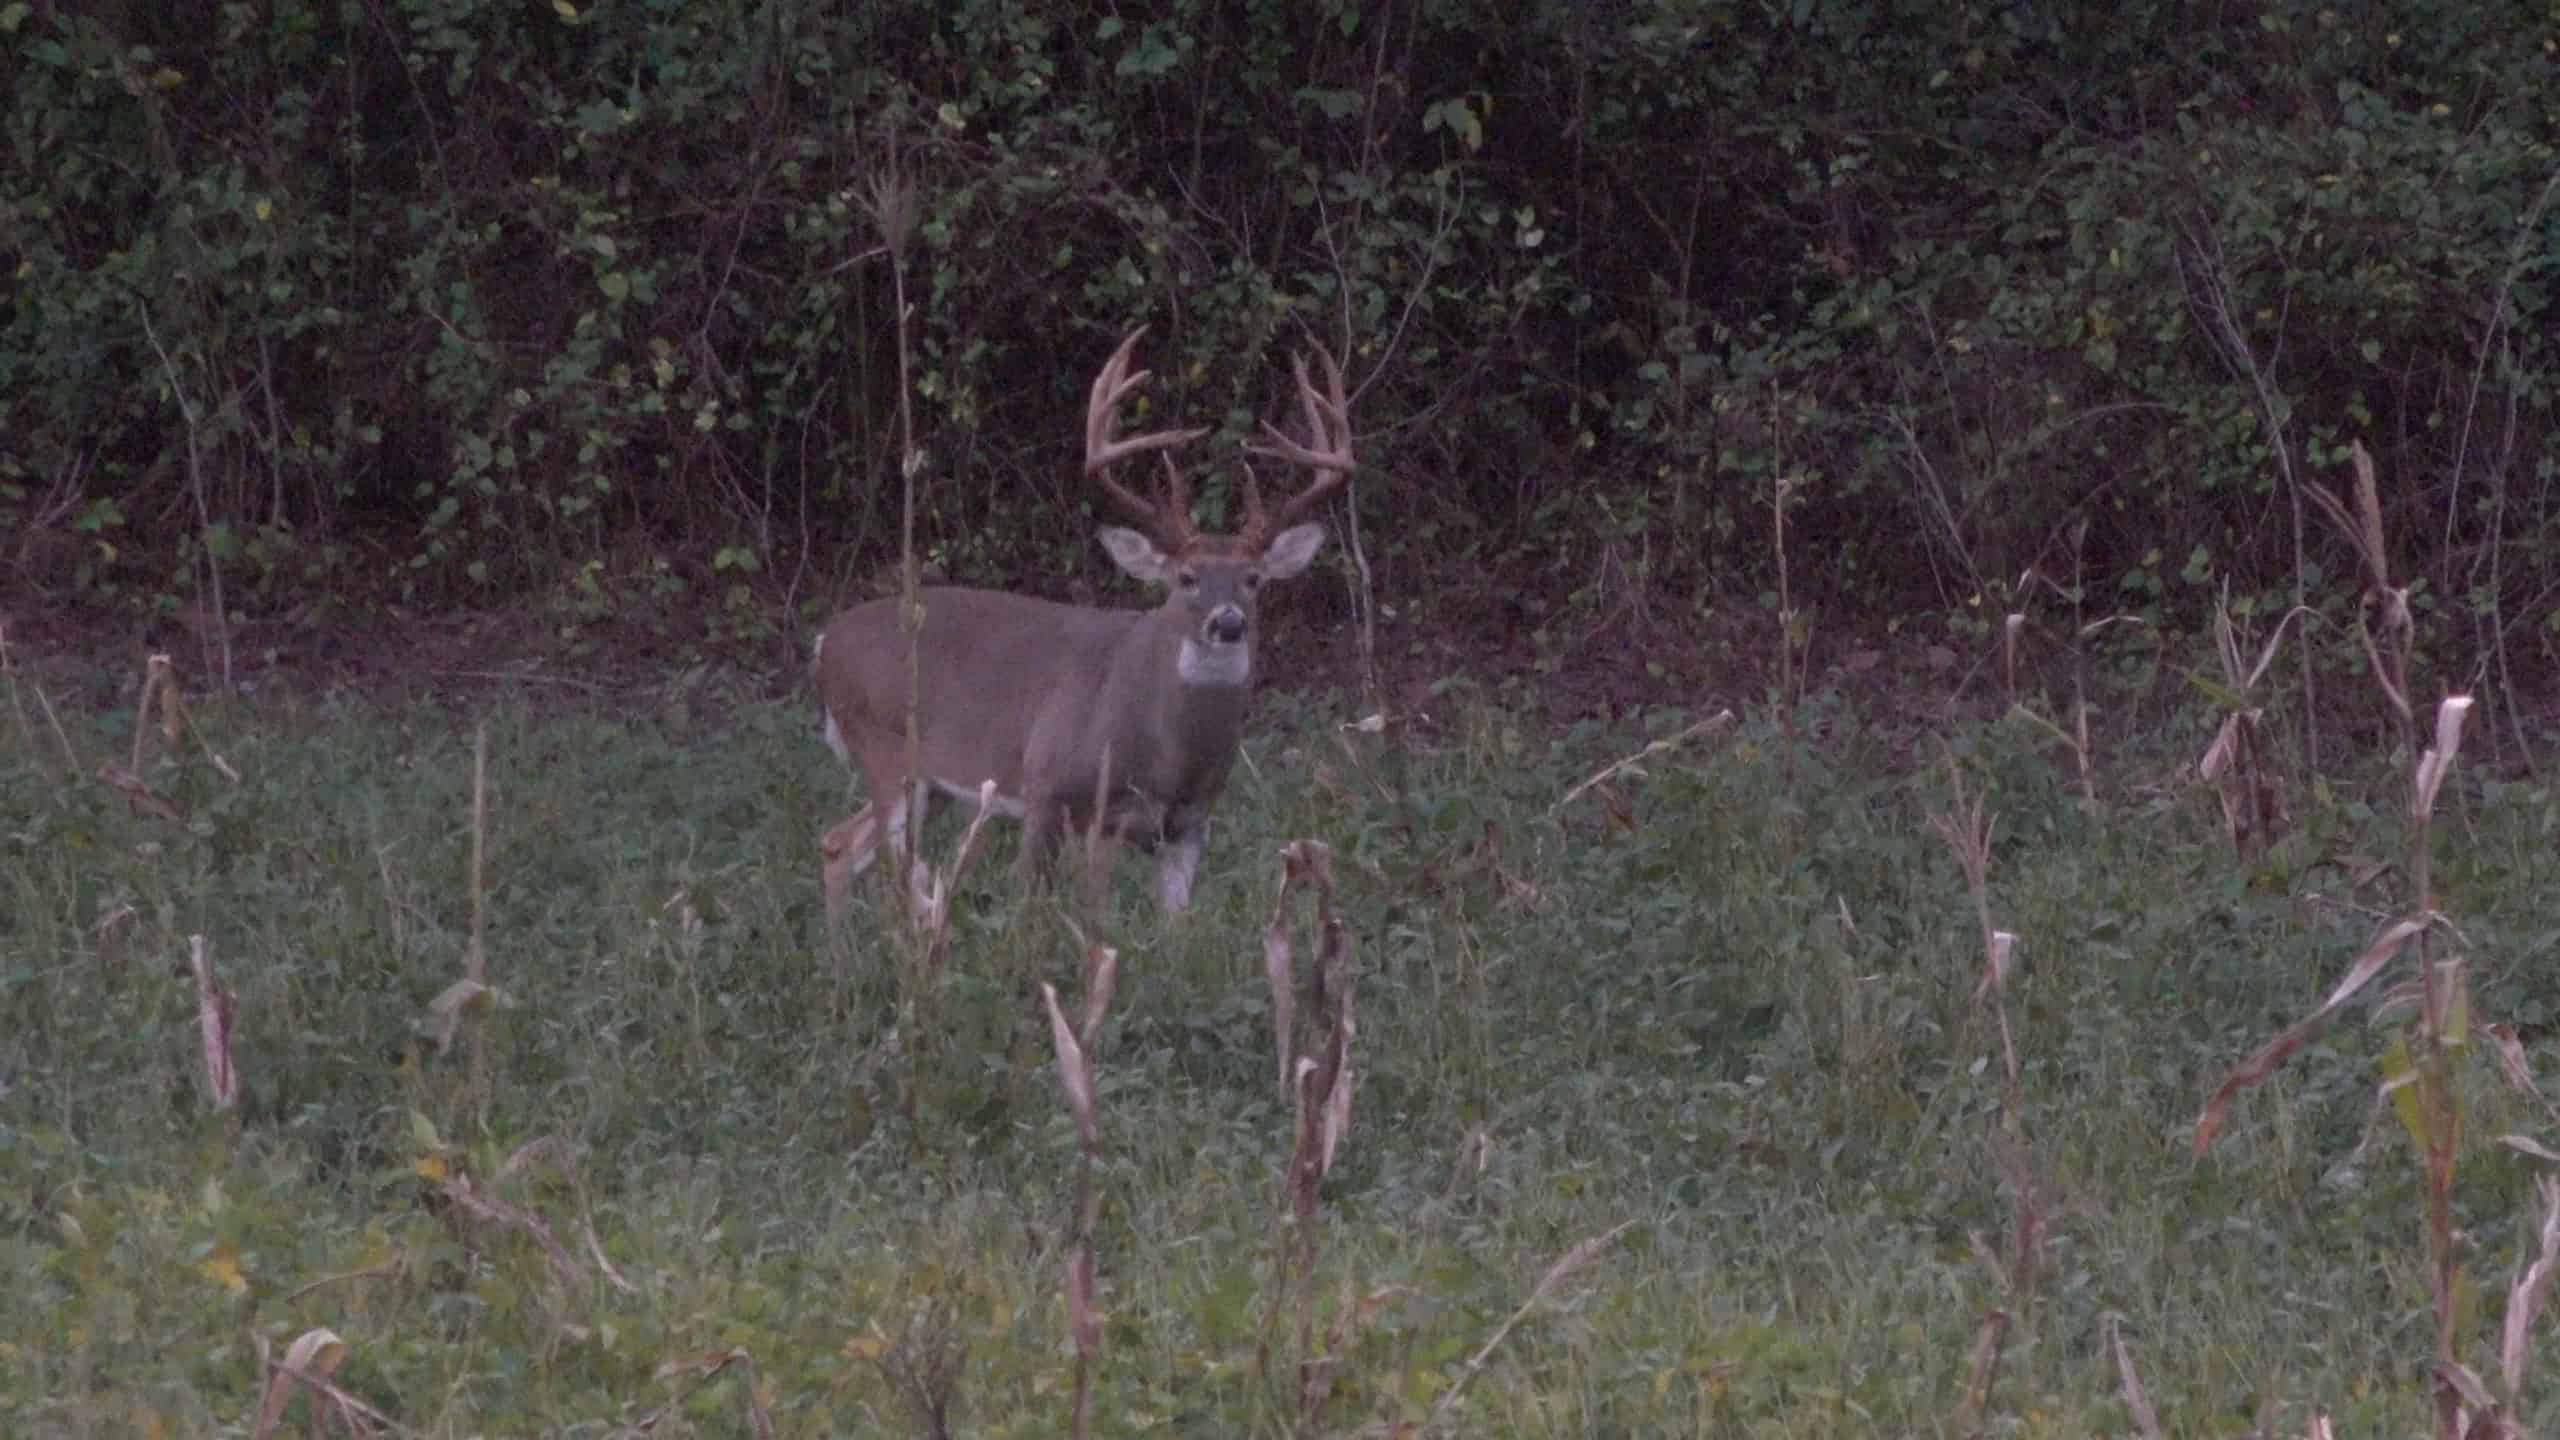 Habitat Changes and the Effects on Hunting